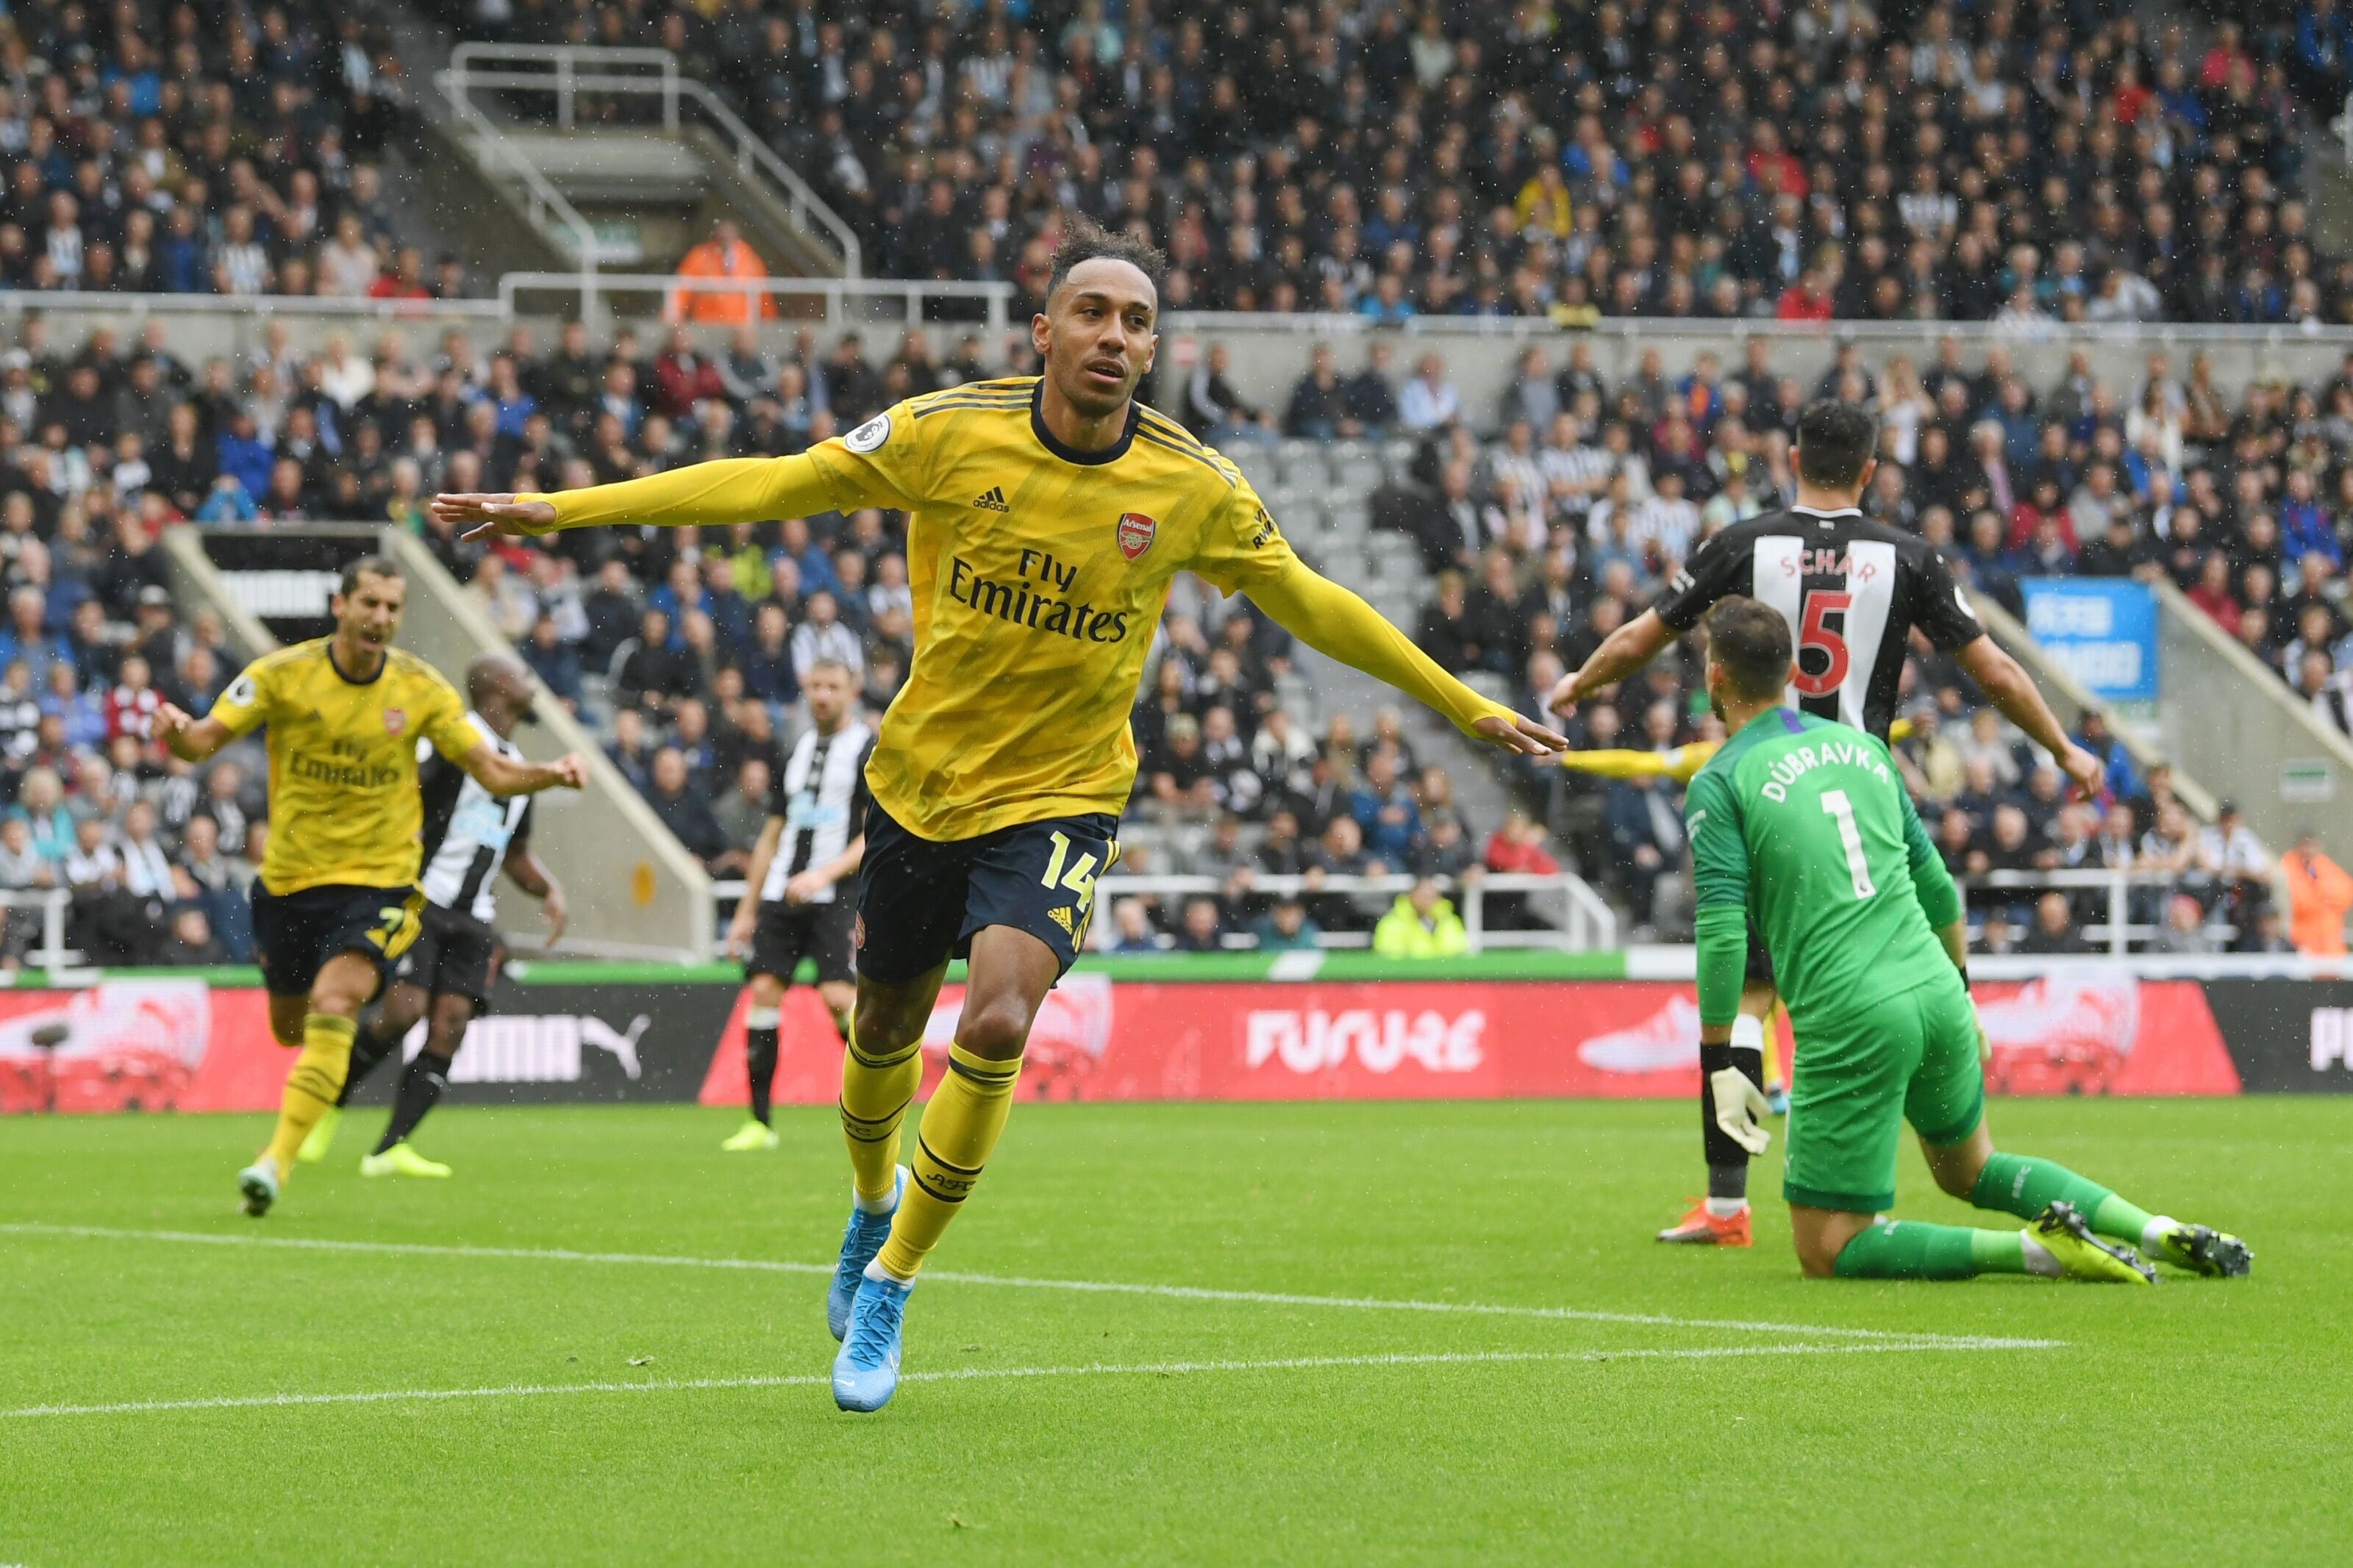 Arsenal: Keep calm, Aubameyang can still fly on the wing